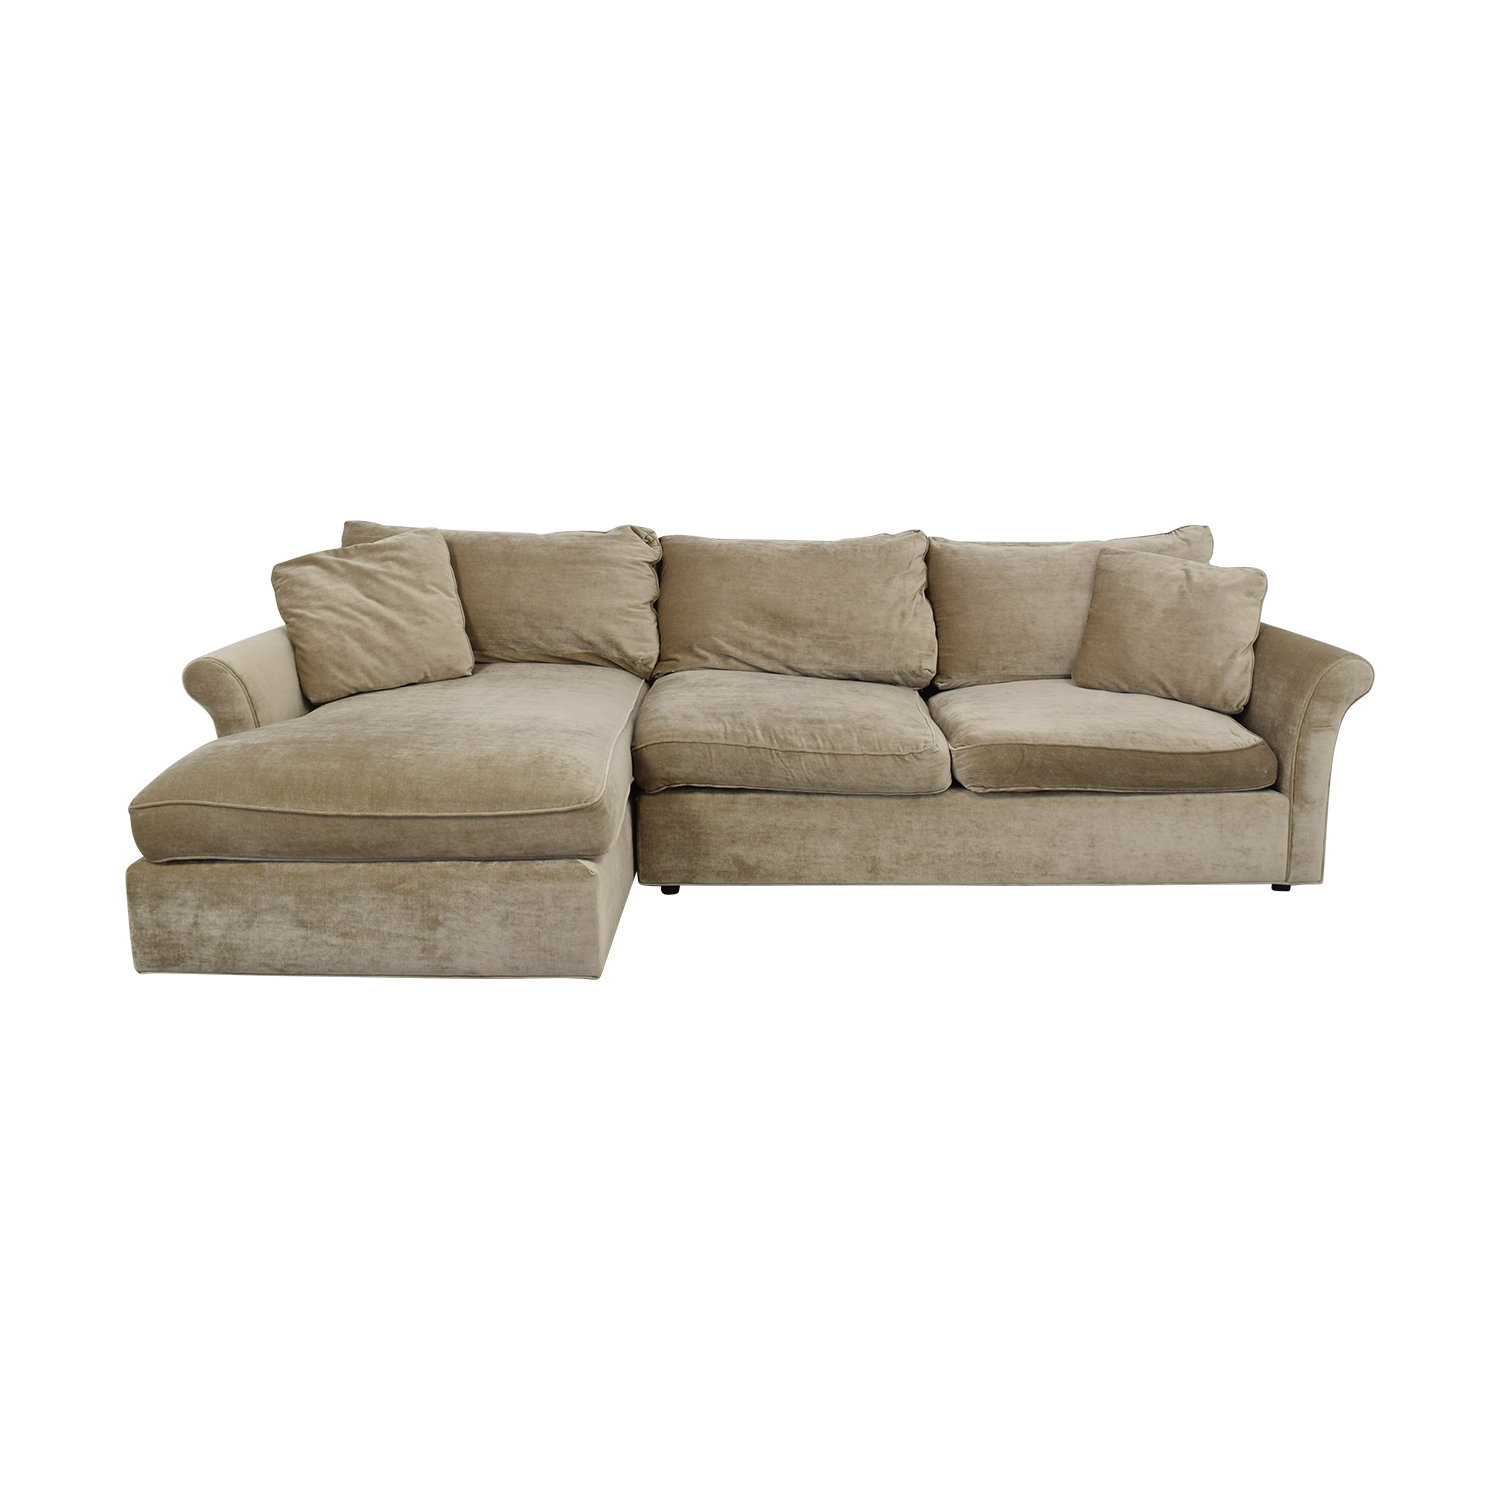 ABC Carpet & Home ABC Carpet & Home Winged Arm Sectional Sofa Beige